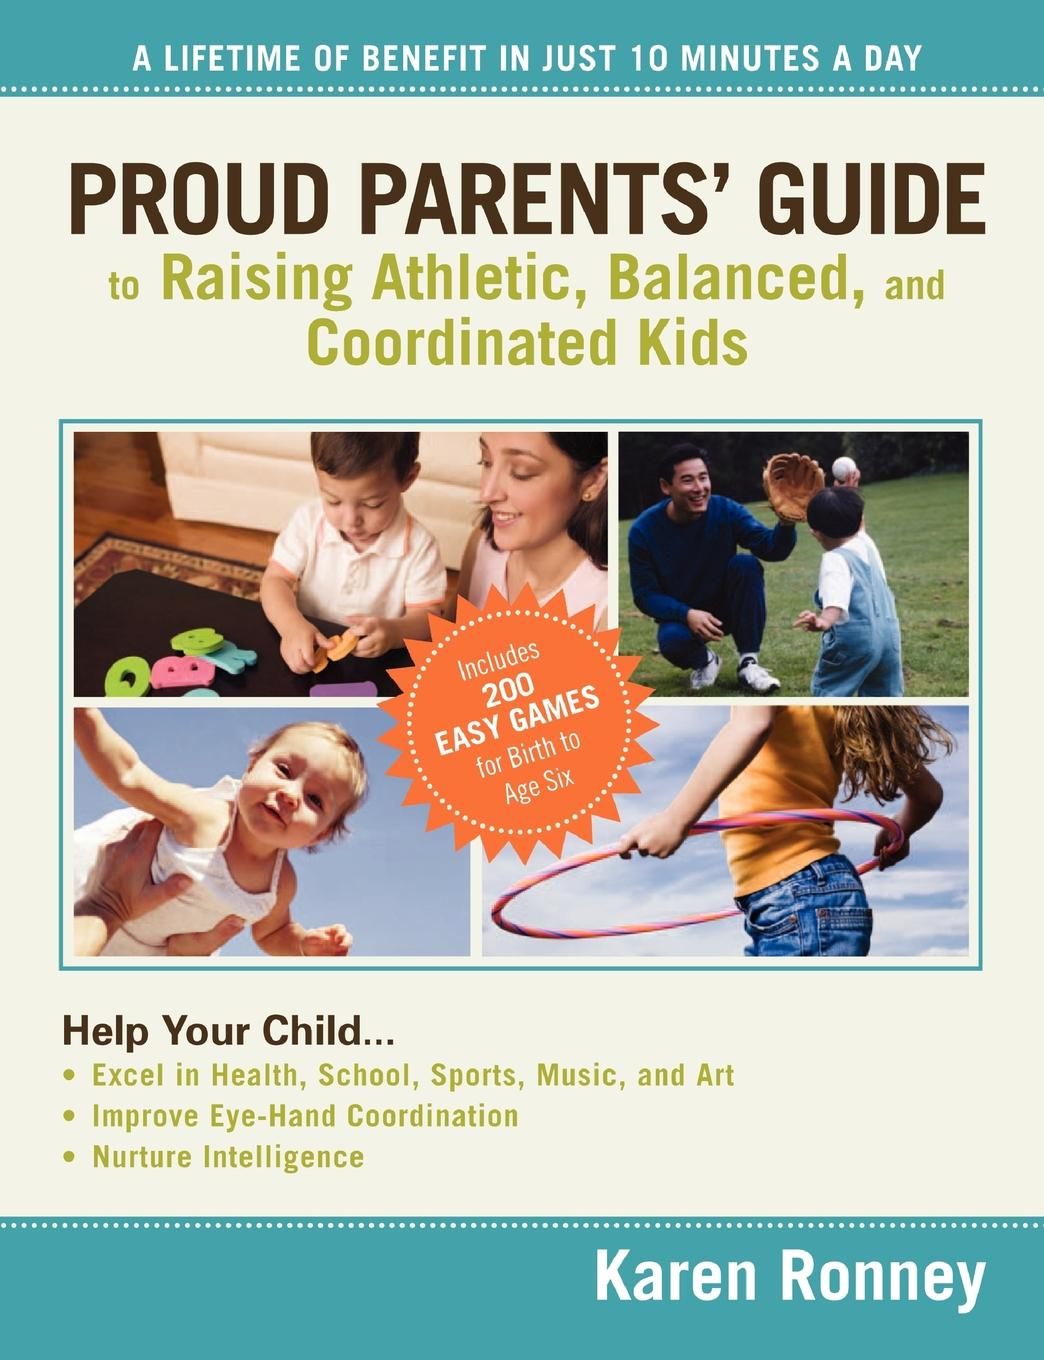 Karen Ronney Proud Parents' Guide to Raising Athletic, Balanced, and Coordinated Kids. A Lifetime of Benefit in Just 10 Minutes a Day frederic brandt 10 minutes 10 years your definitive guide to a beautiful and youthful